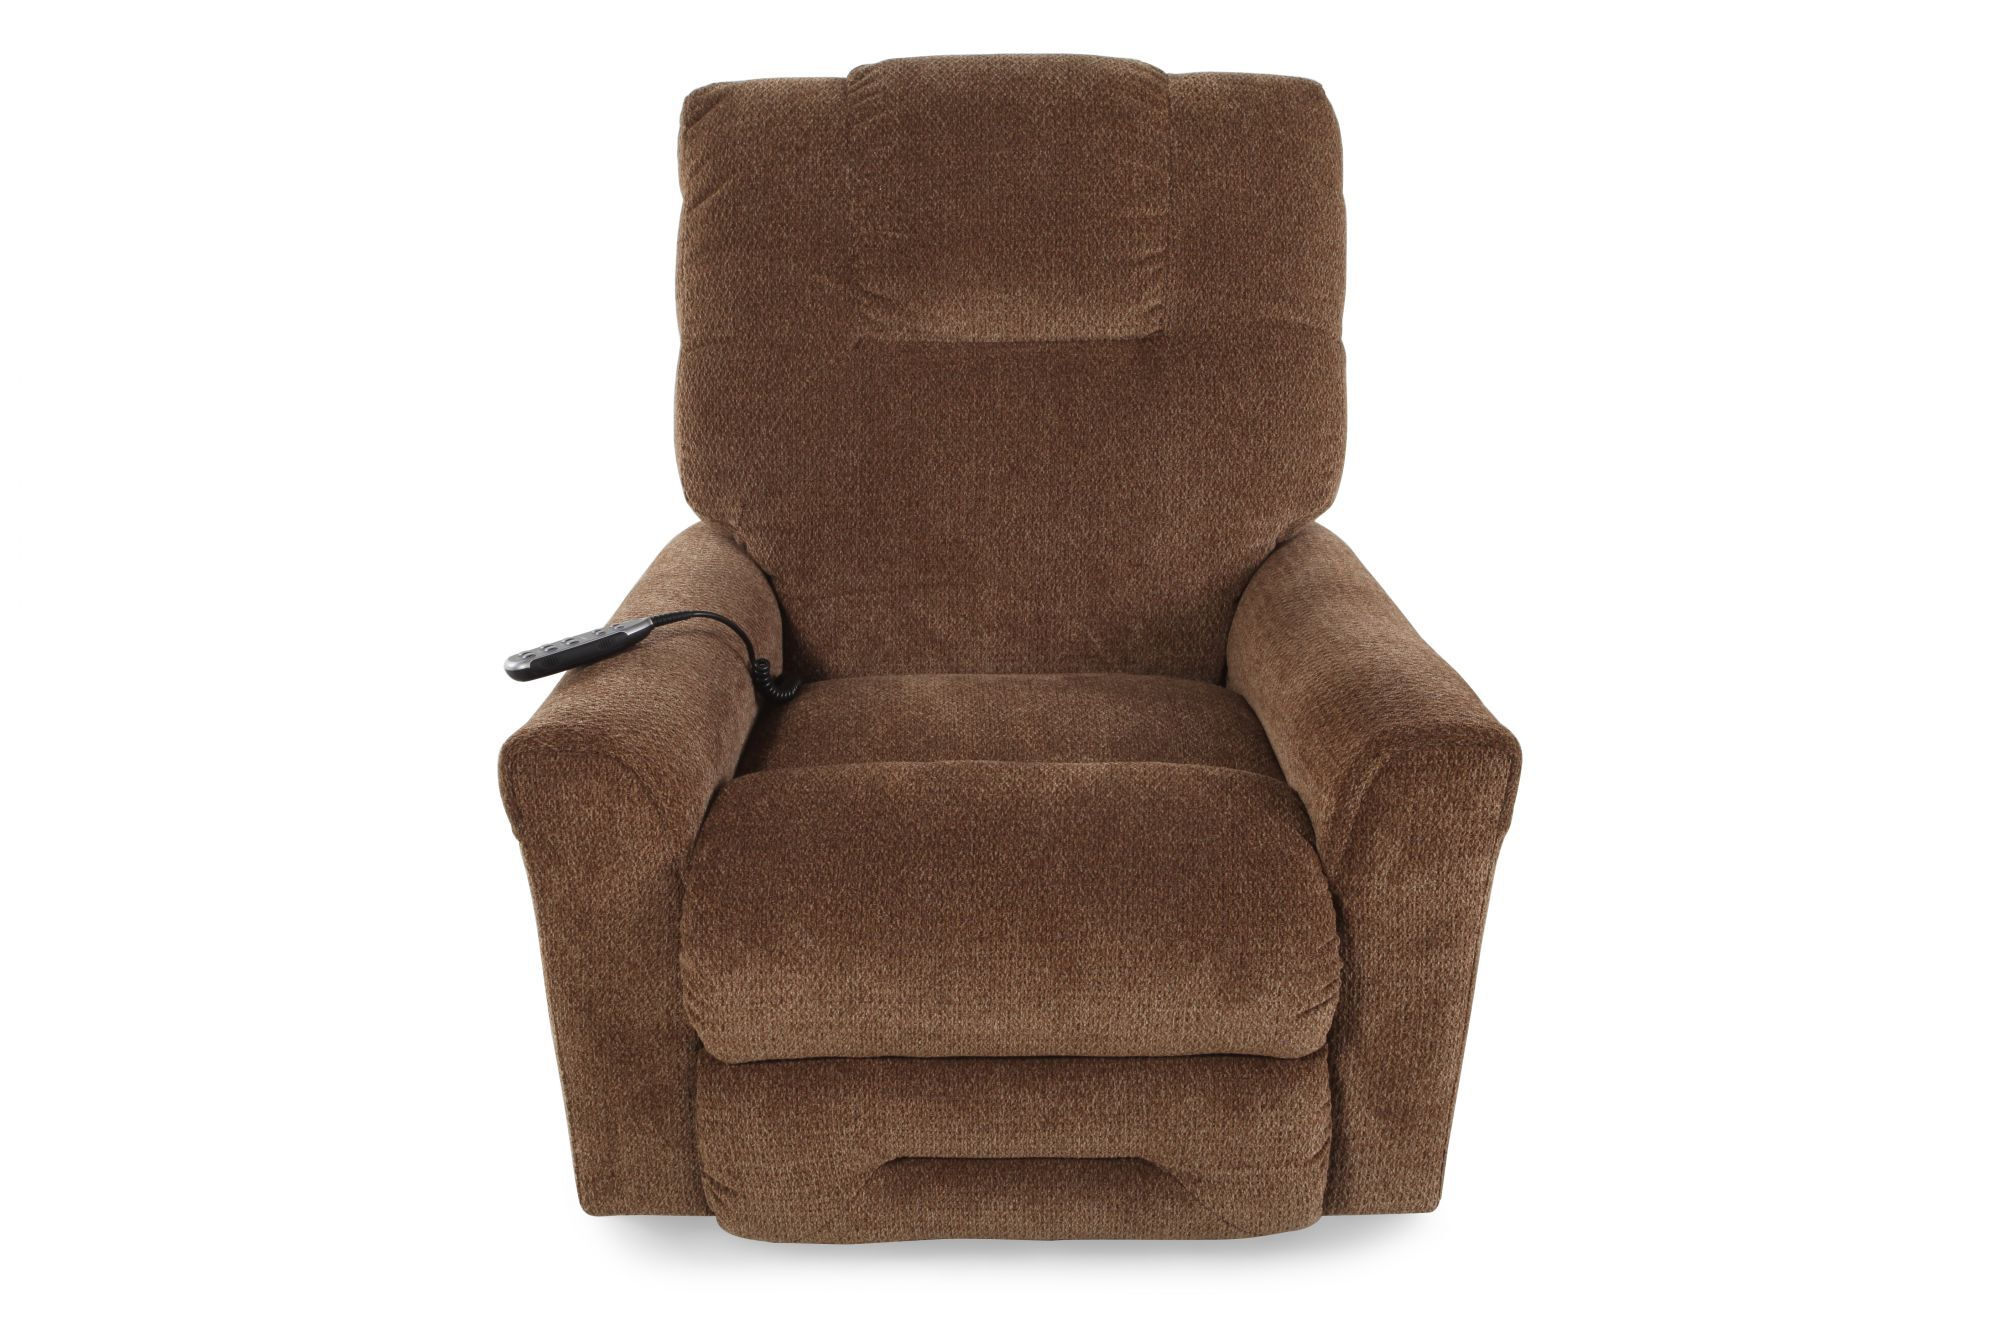 La-Z-Boy Easton Bark Power Recliner ...  sc 1 st  Mathis Brothers & Recliners - Reclining Chairs u0026 Sofas | Mathis Brothers islam-shia.org